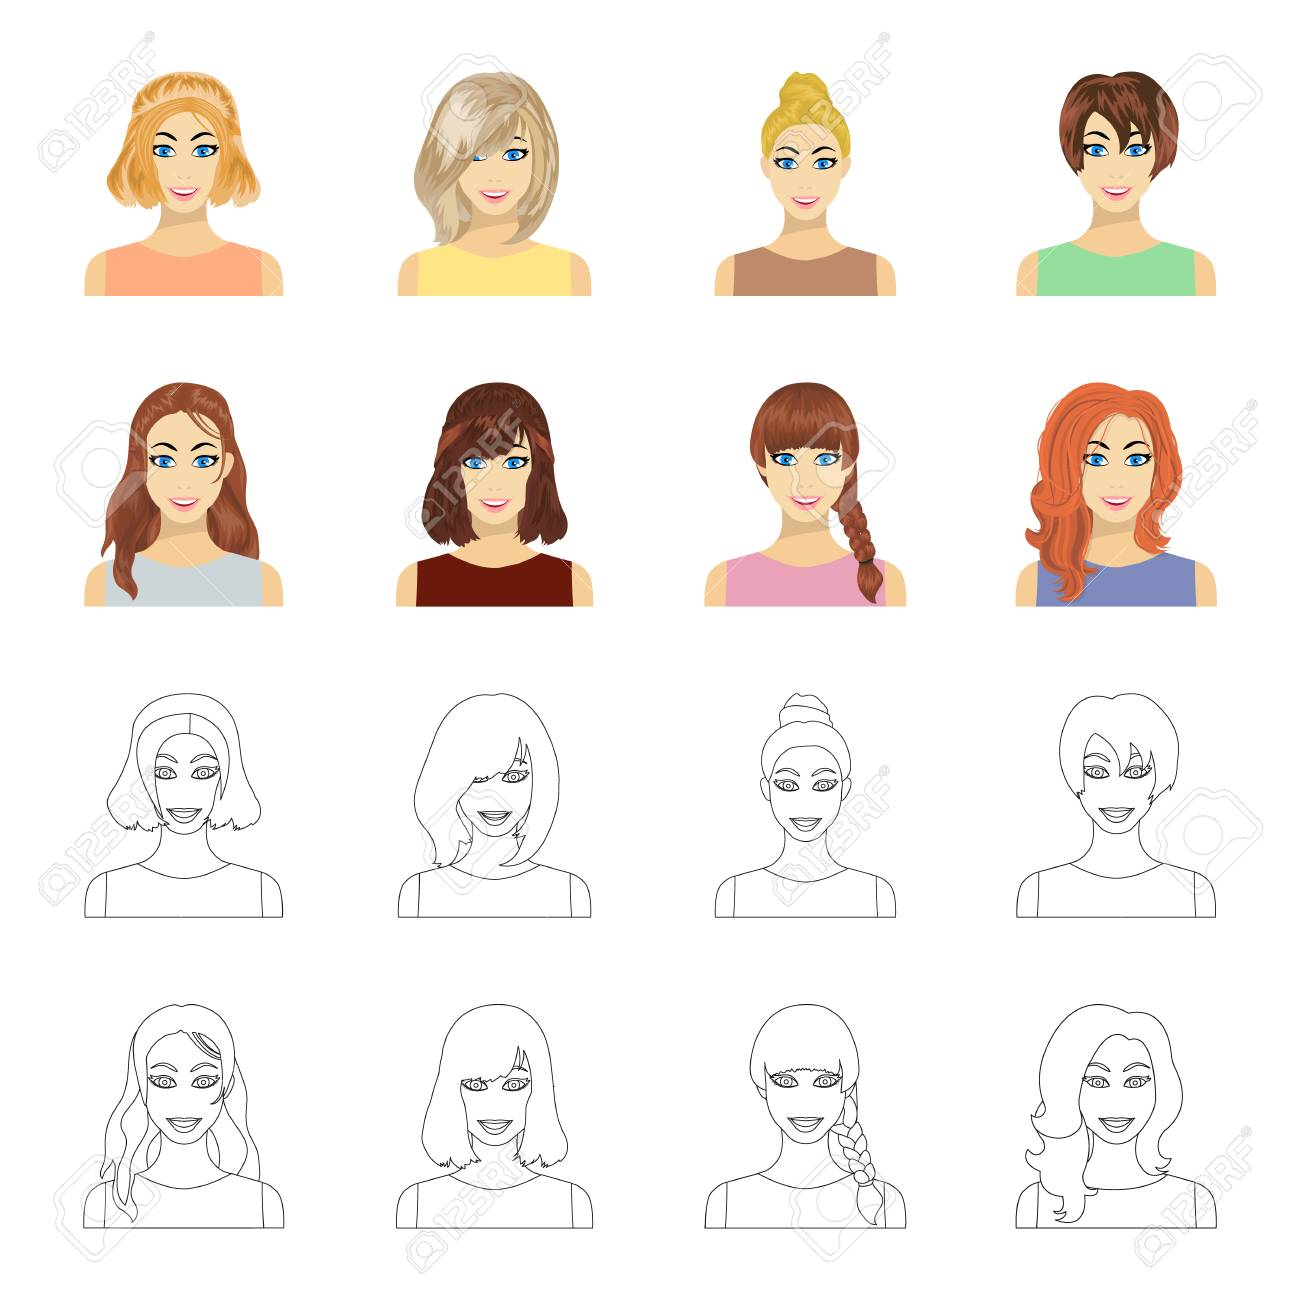 Types Of Female Hairstyles Cartoonoutline Icons In Set Collection